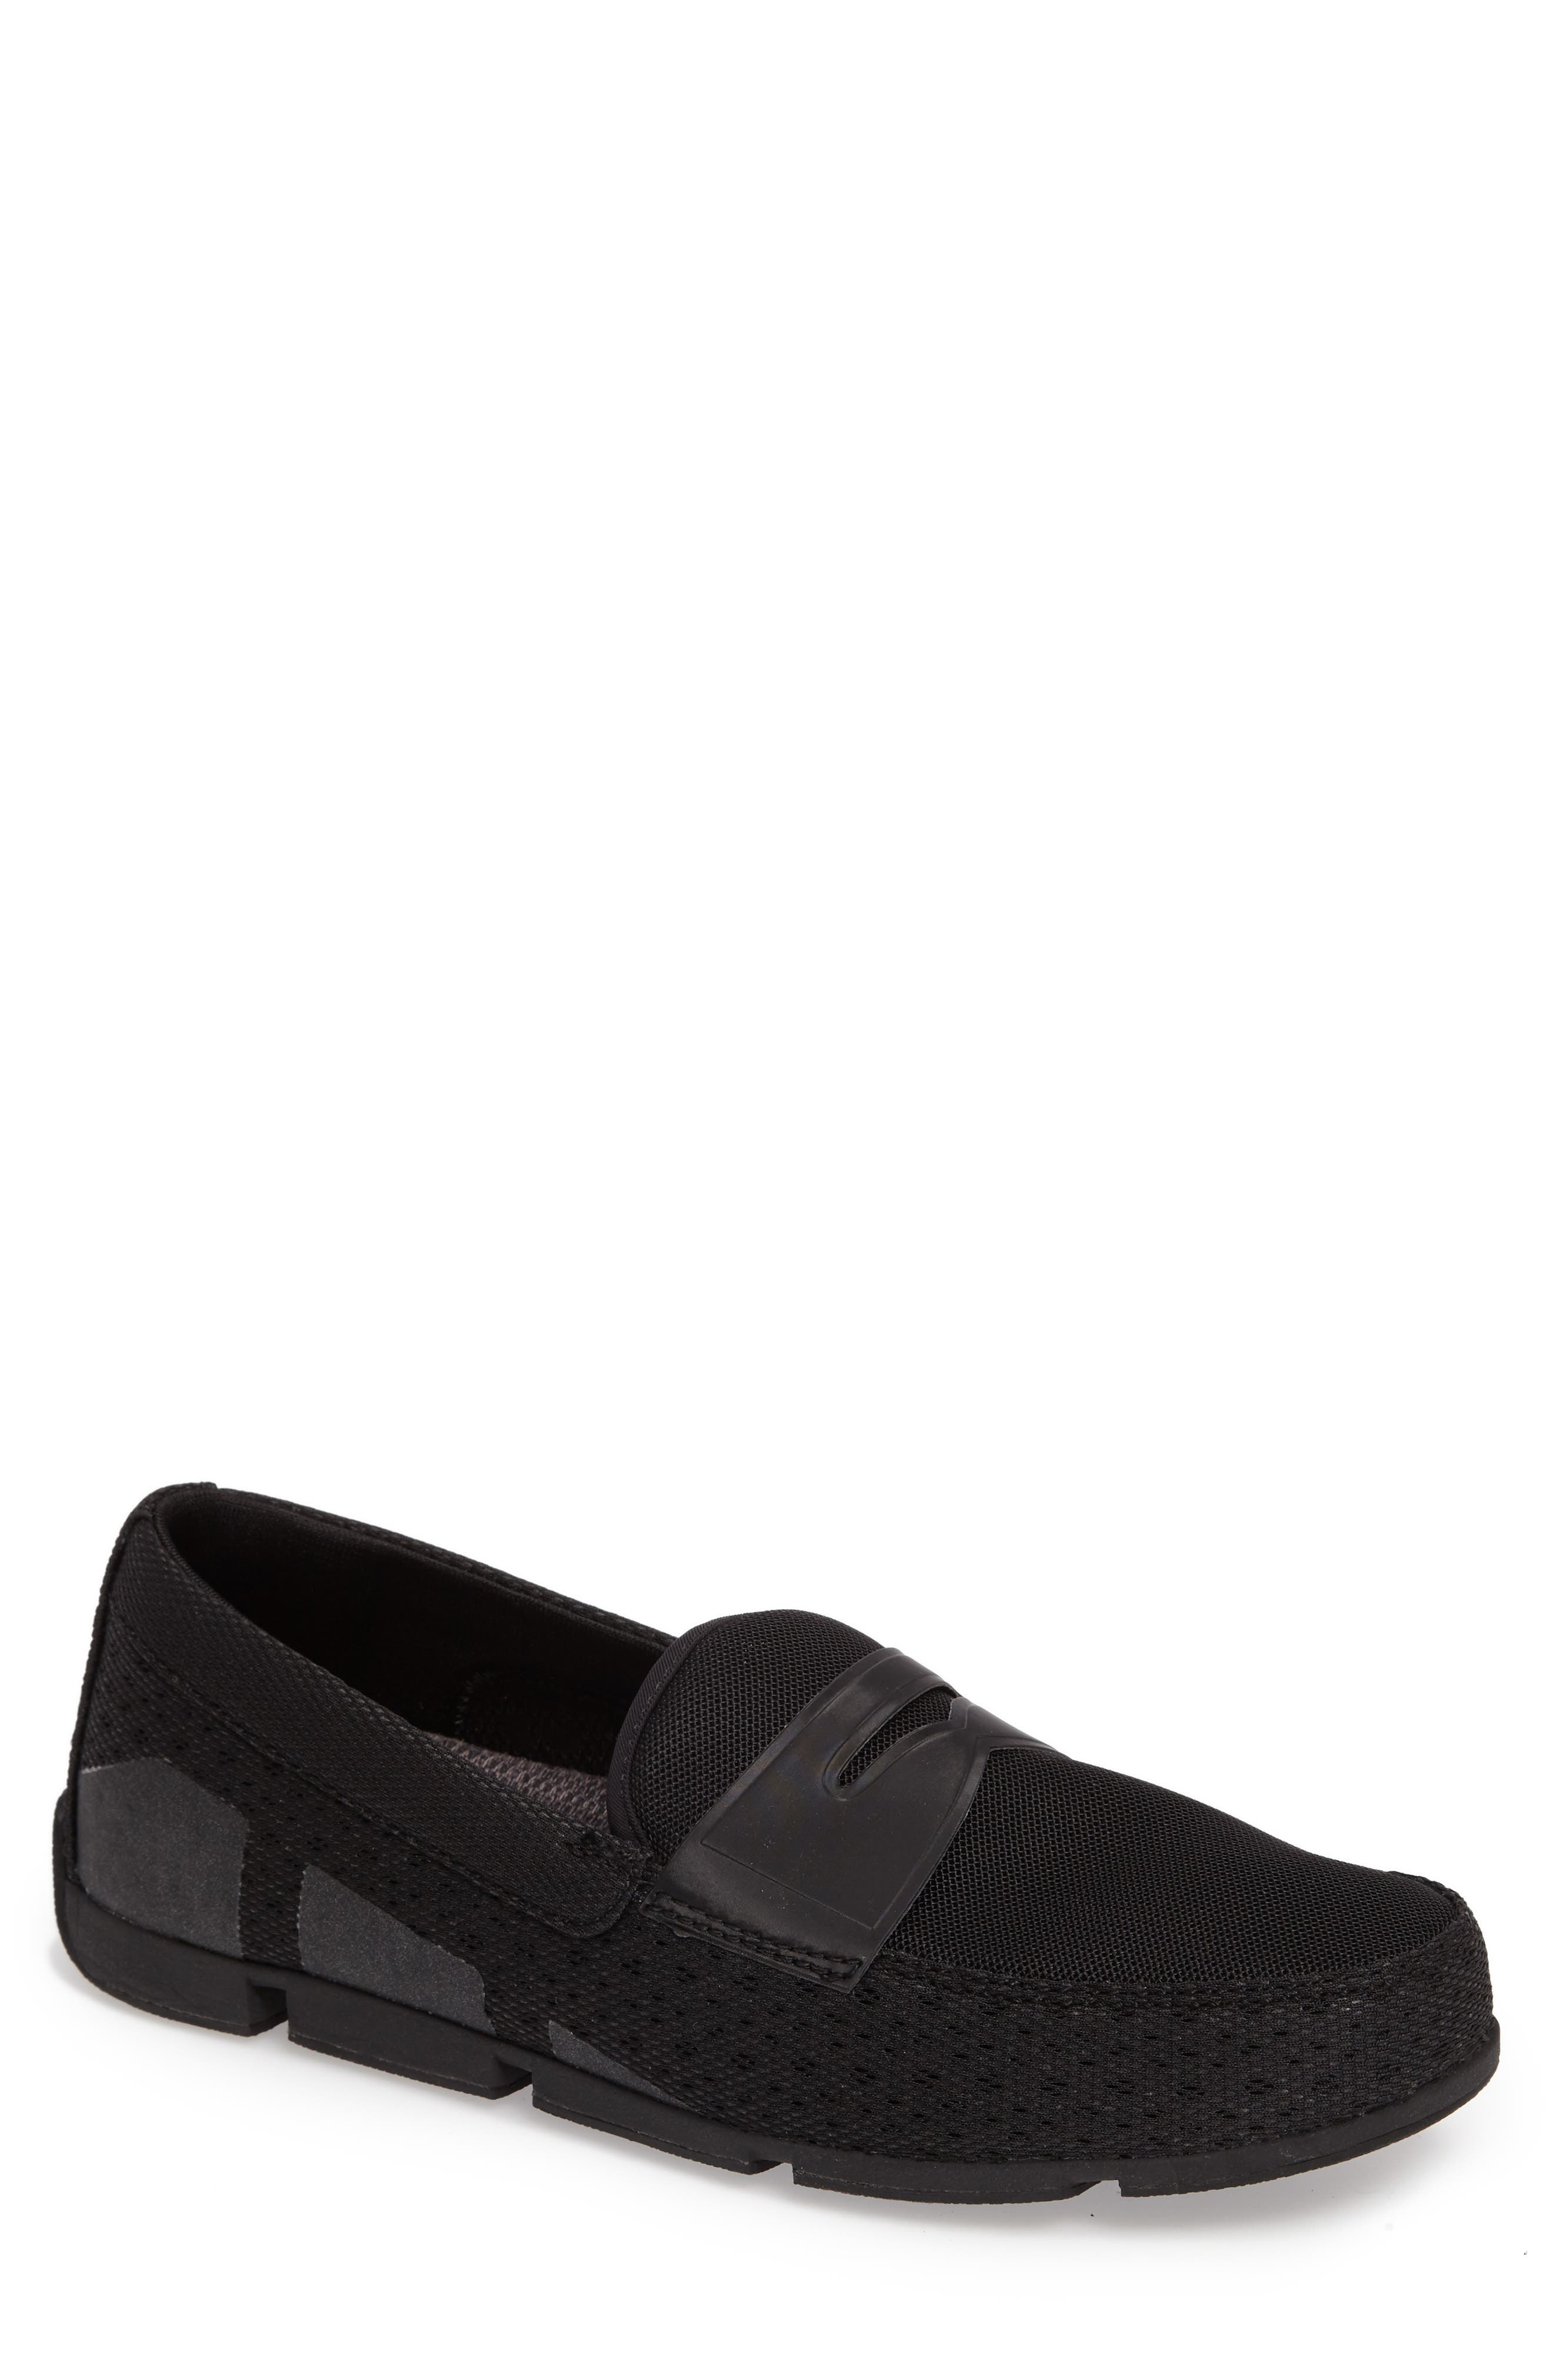 Breeze Penny Loafer,                         Main,                         color, 001